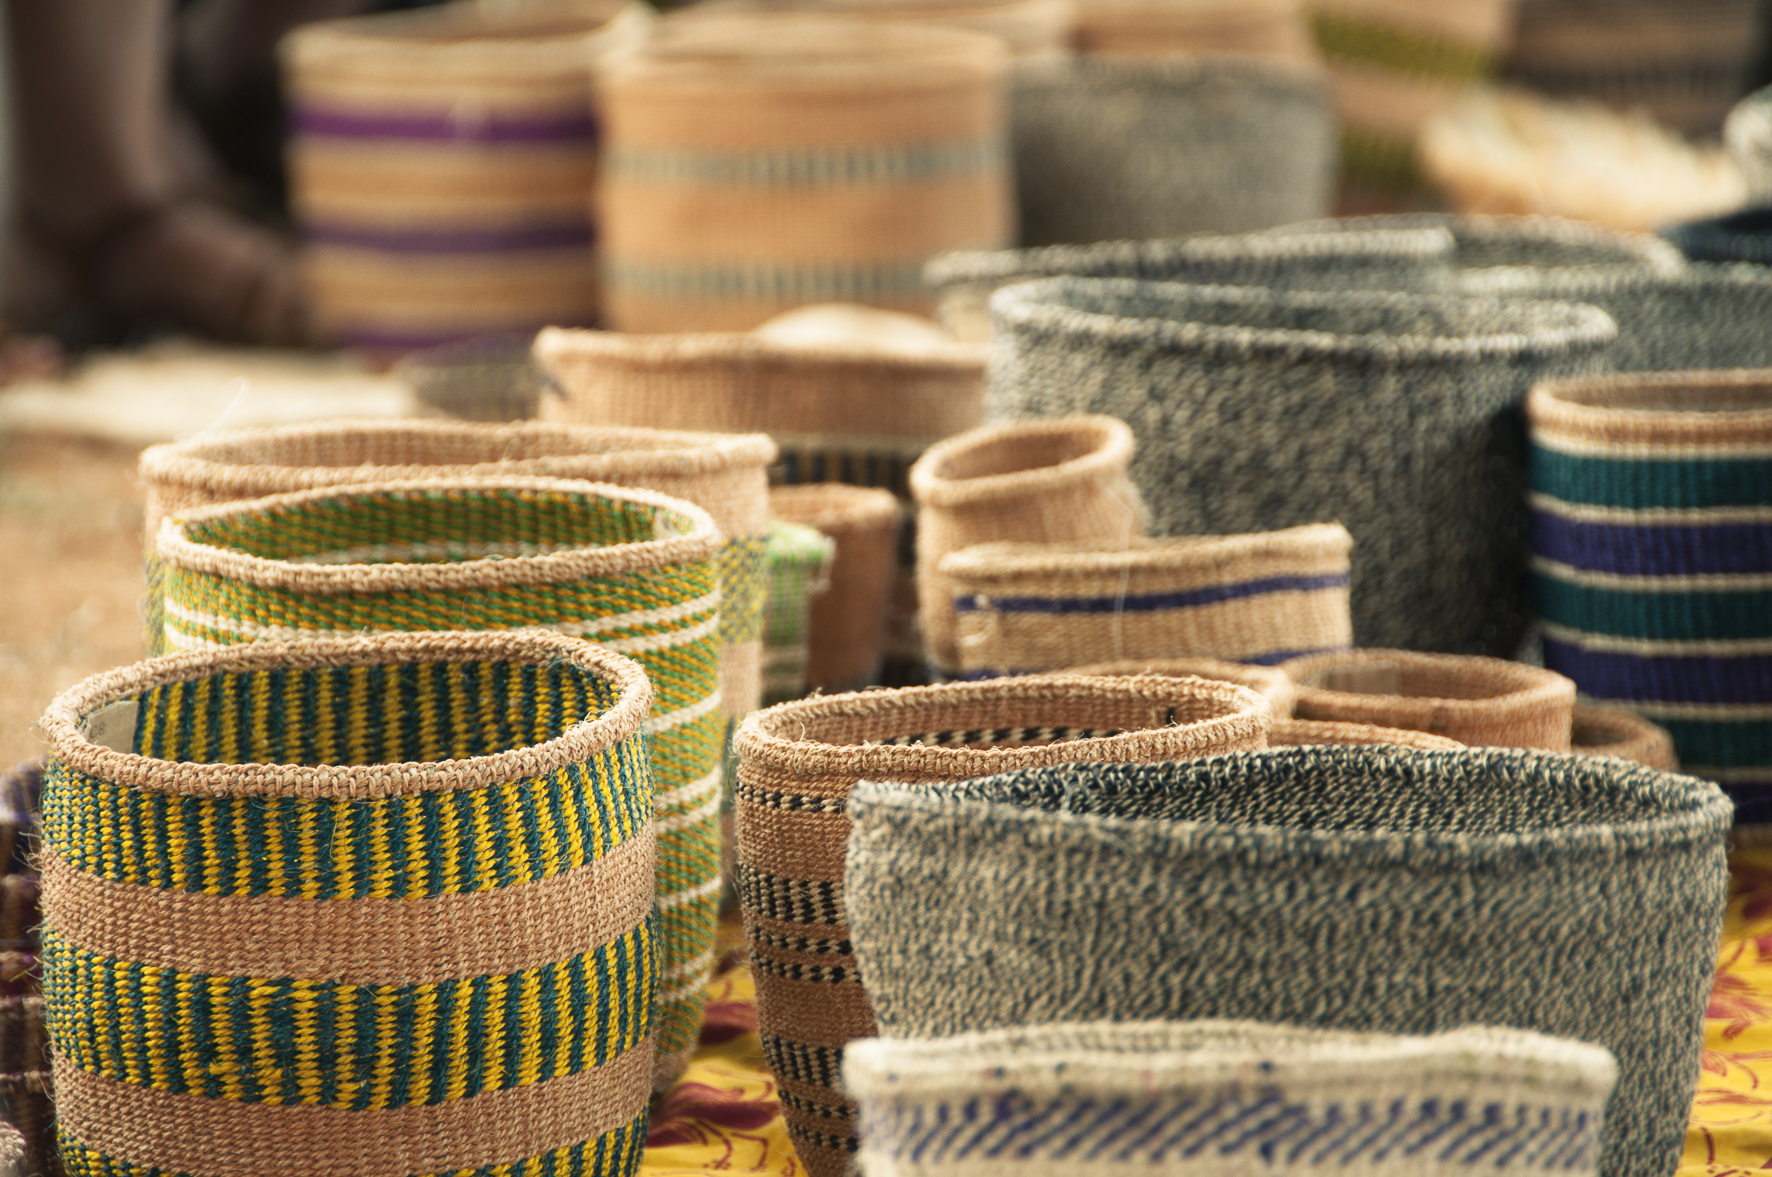 1Handicrafts from south eastern kenya.jpg